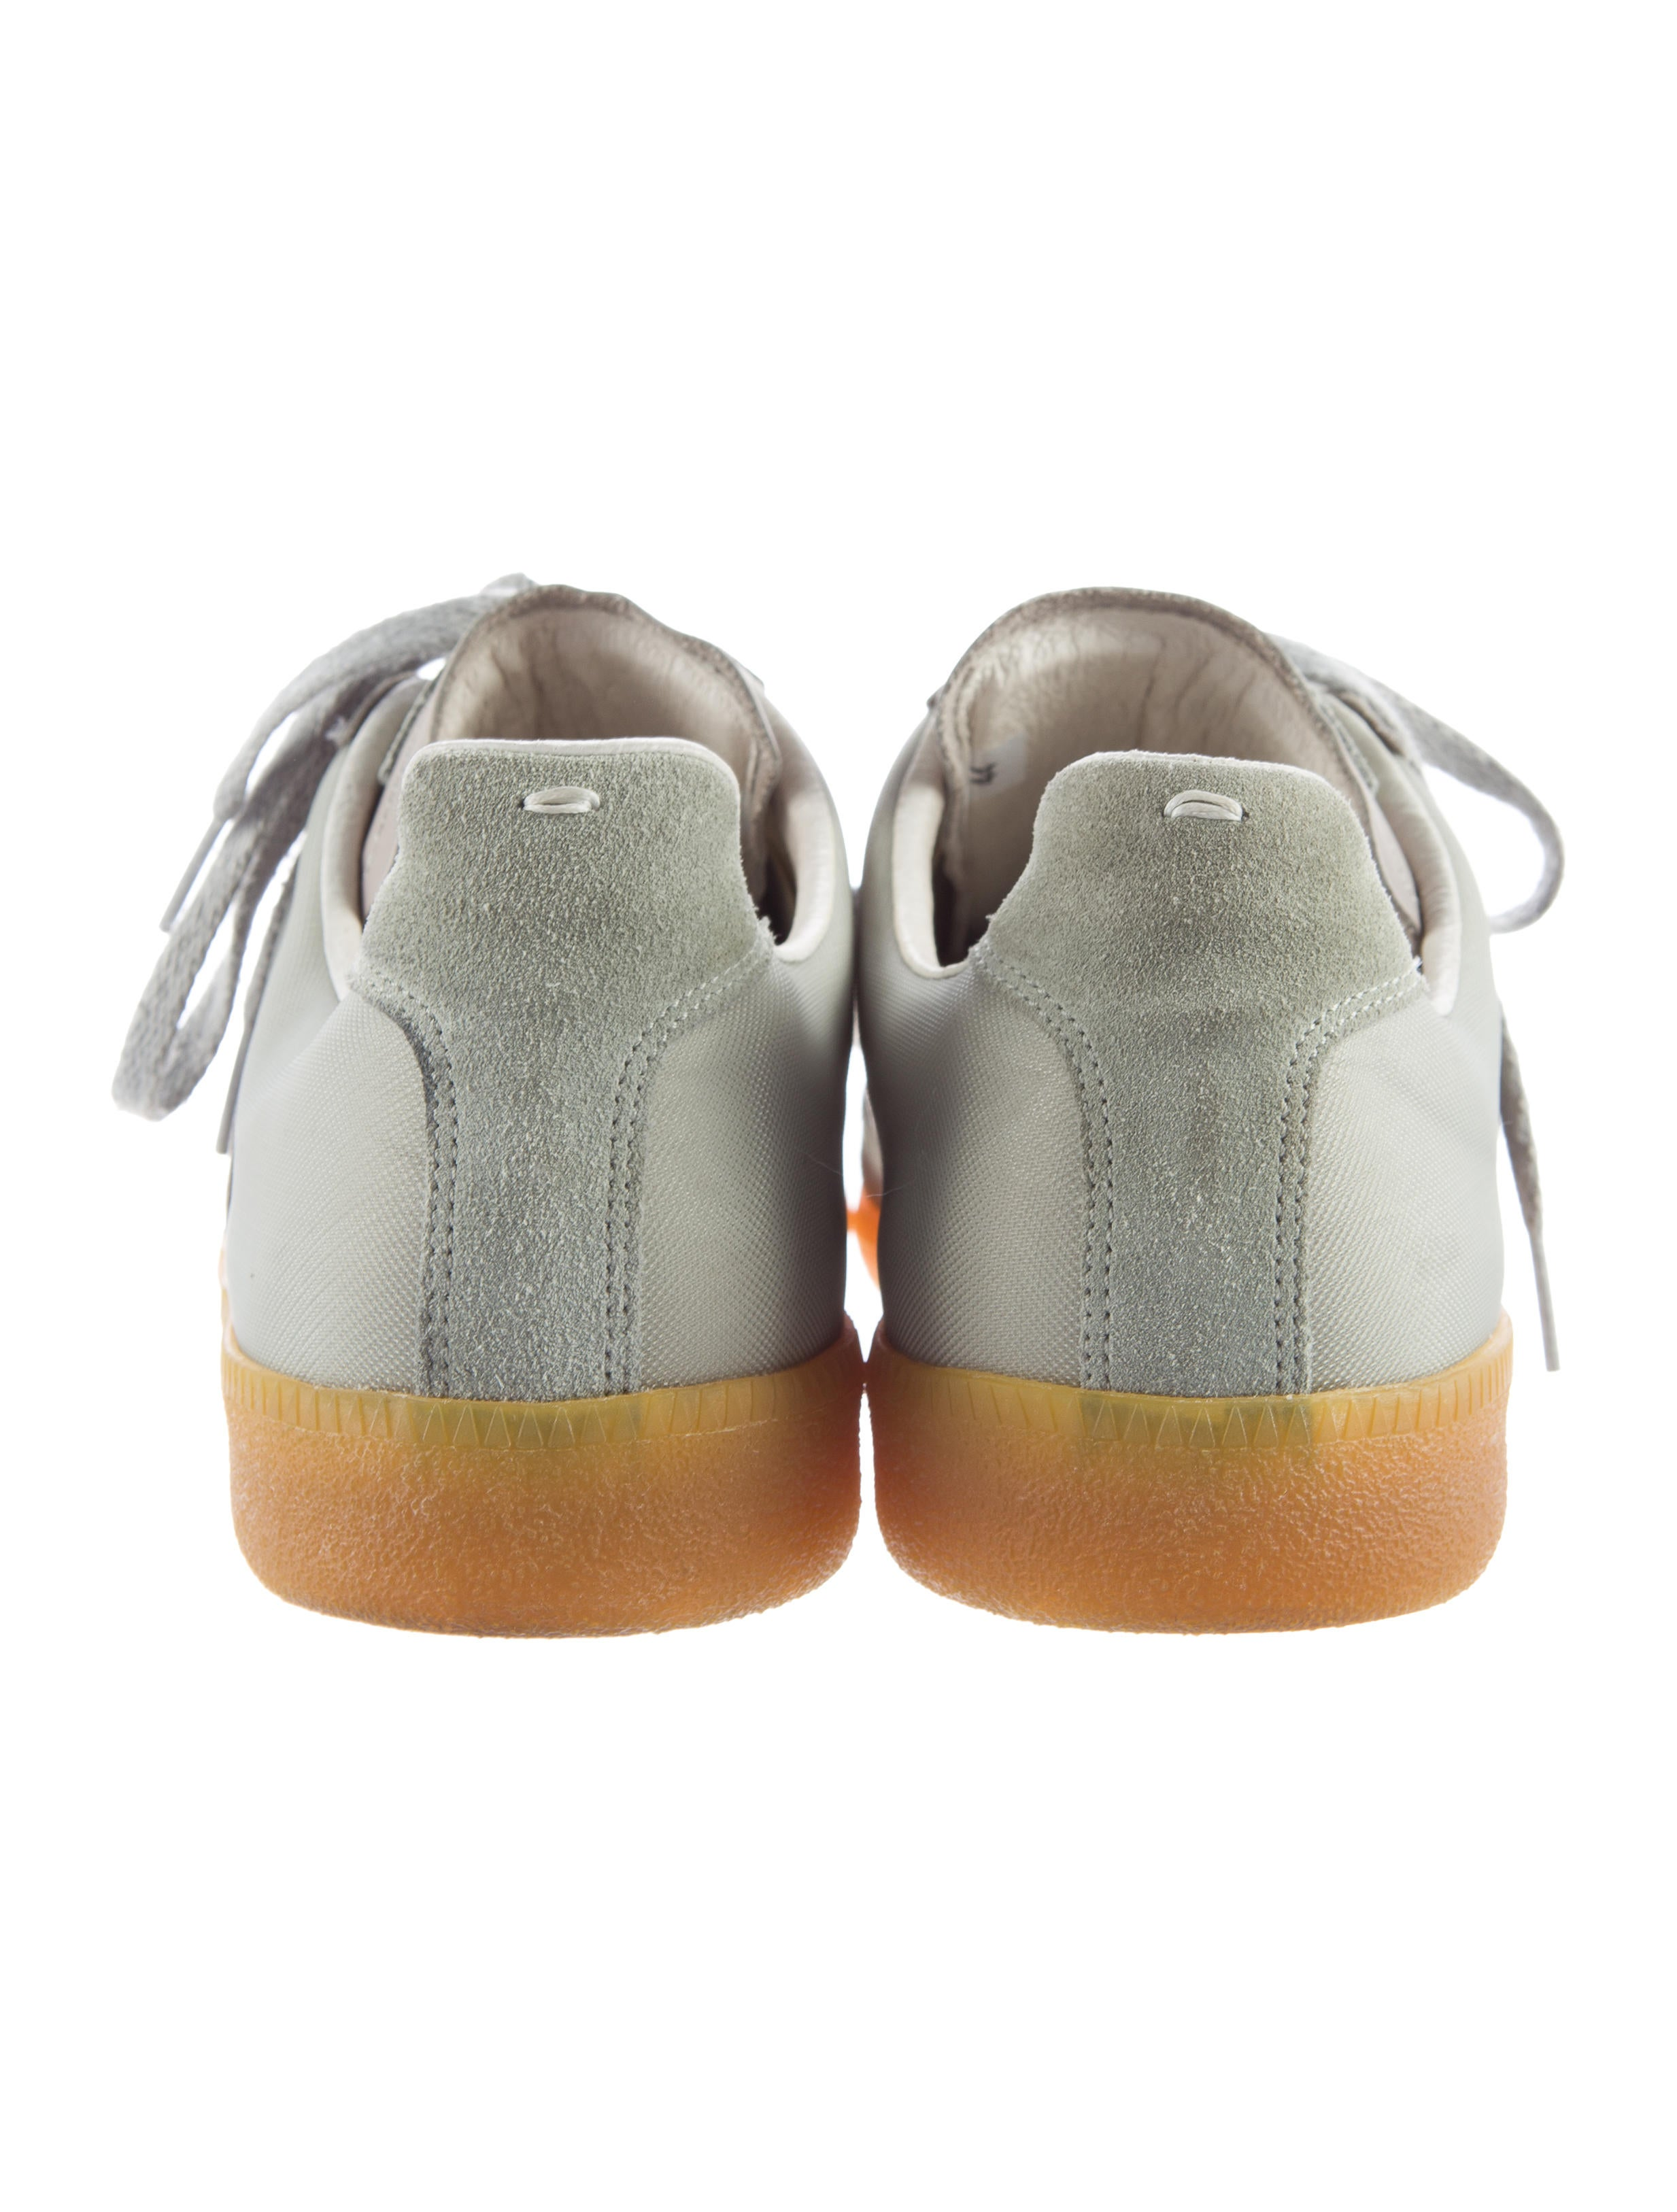 Maison martin margiela suede trimmed replica sneakers for Replica maison martin margiela